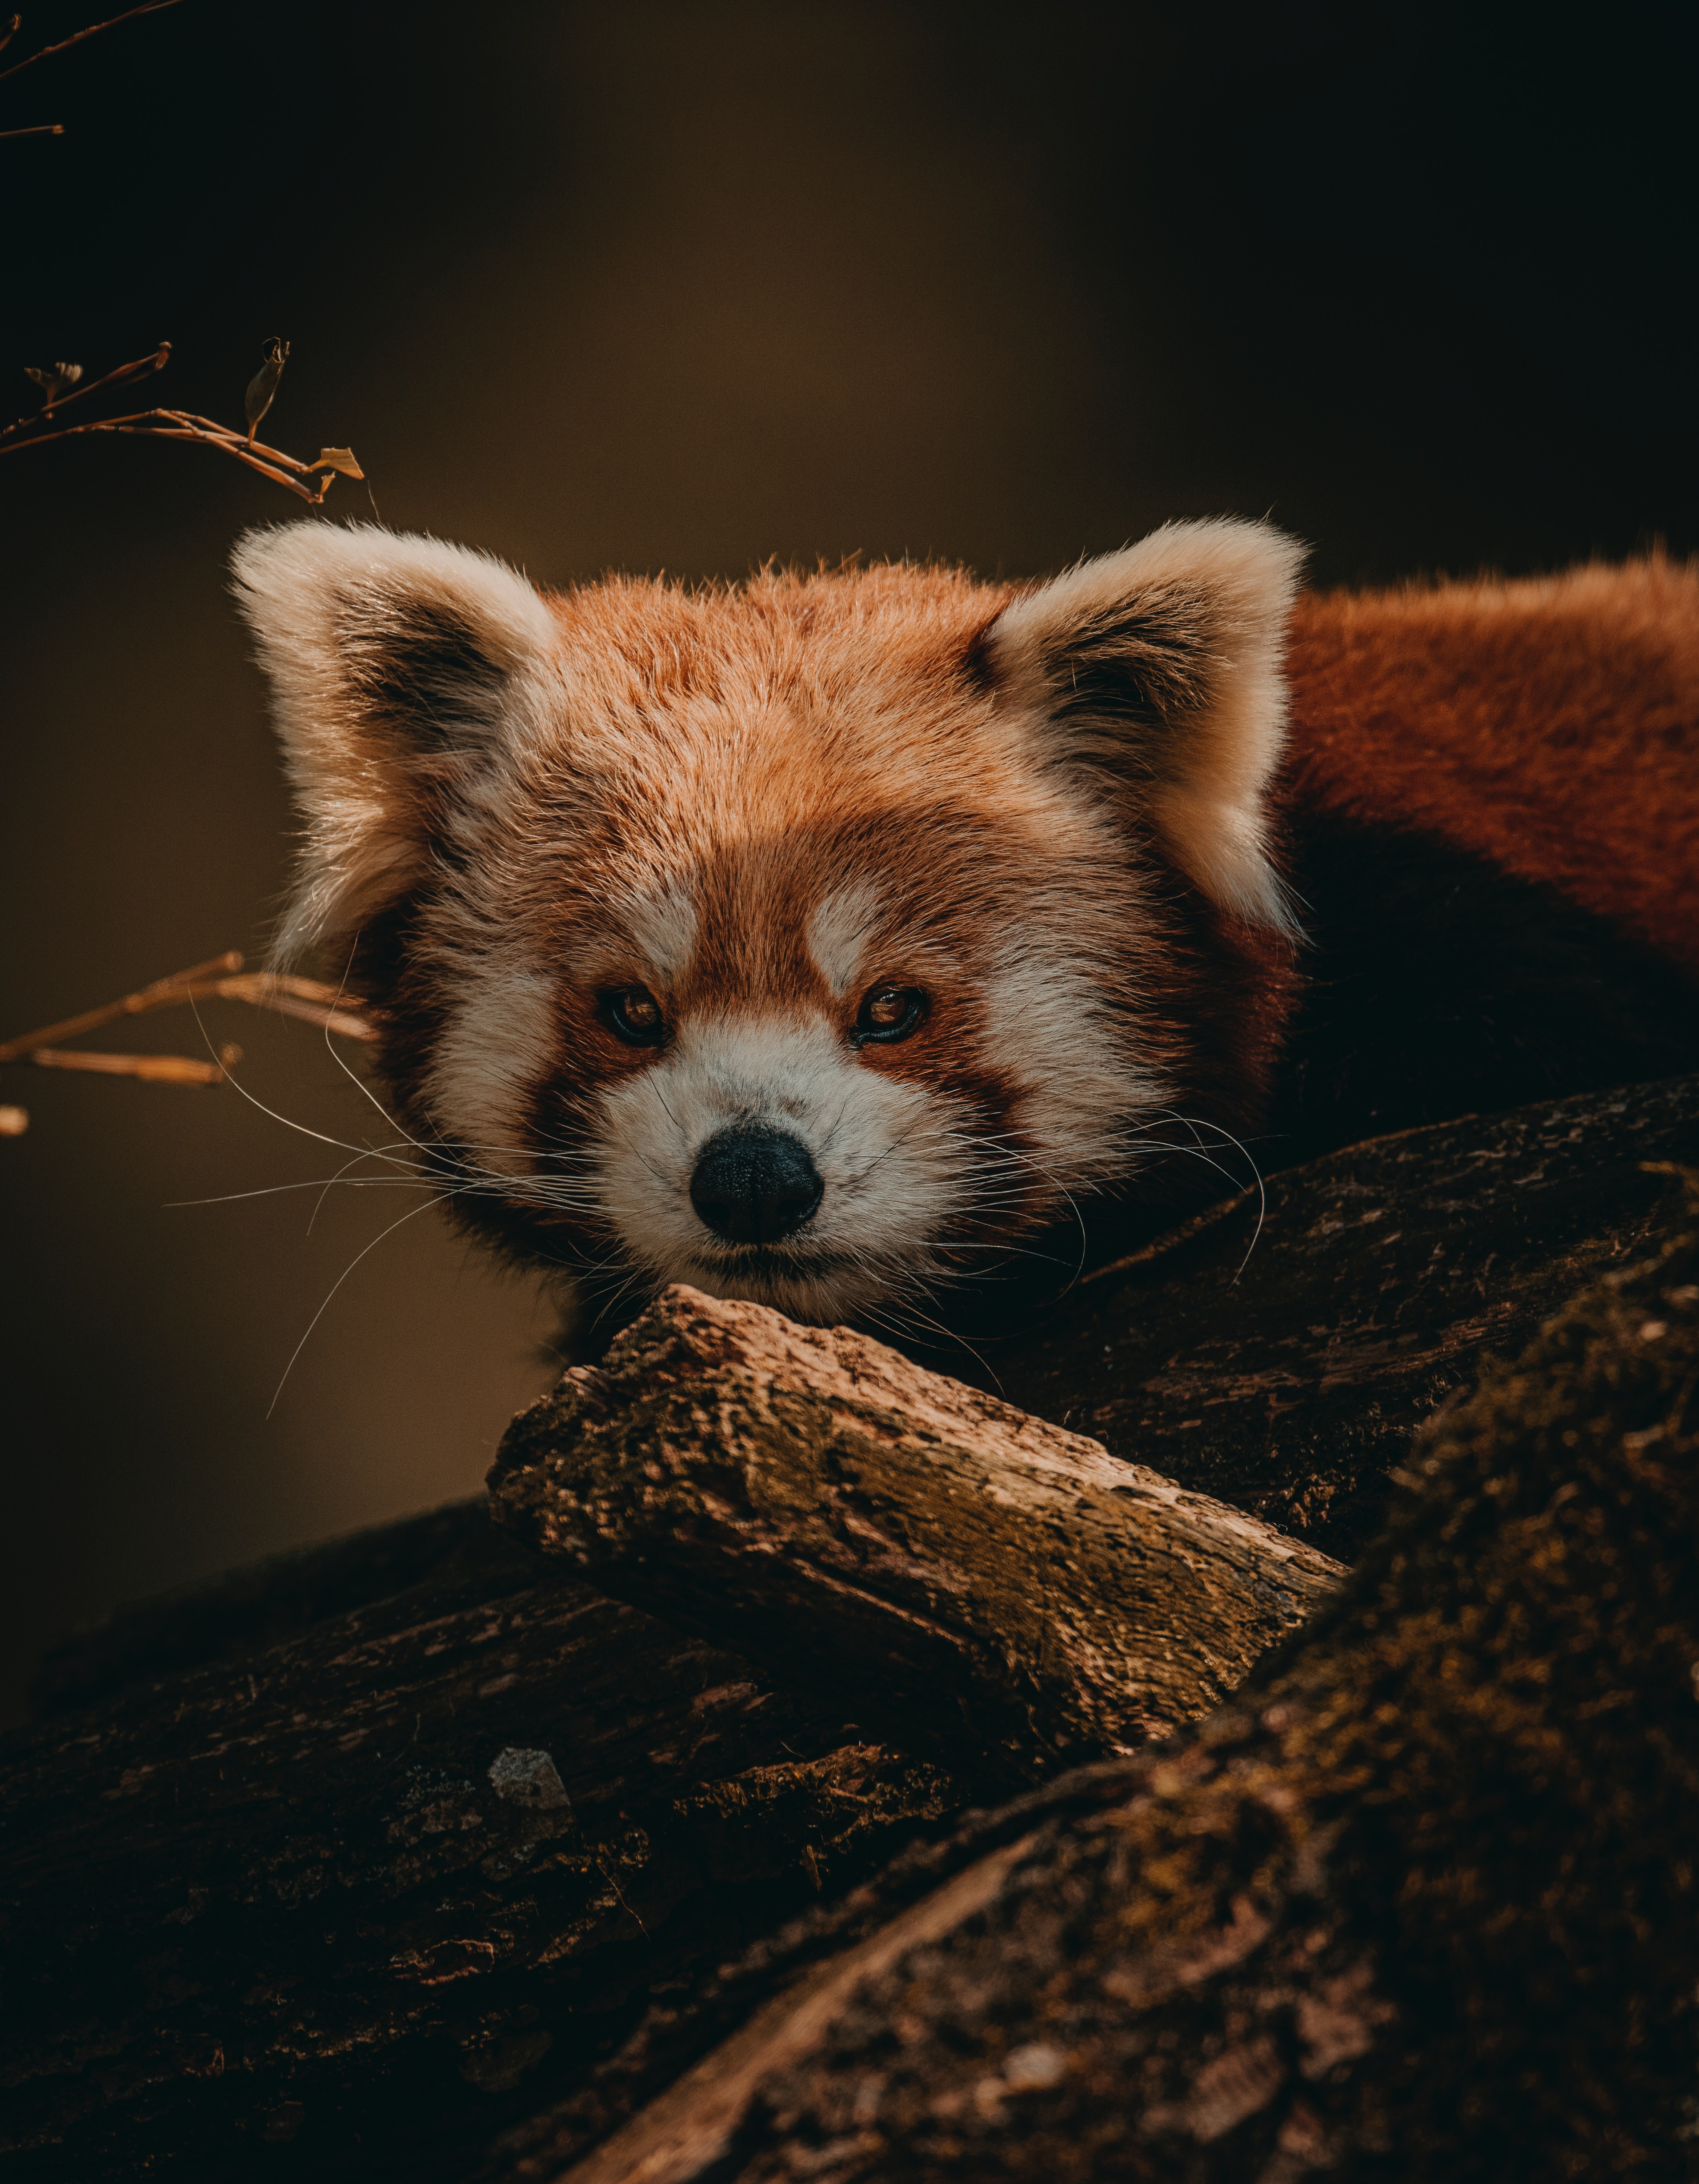 68732 download wallpaper Animals, Little Panda, Small Panda, Animal, Brown, Wood, Tree, Wildlife screensavers and pictures for free